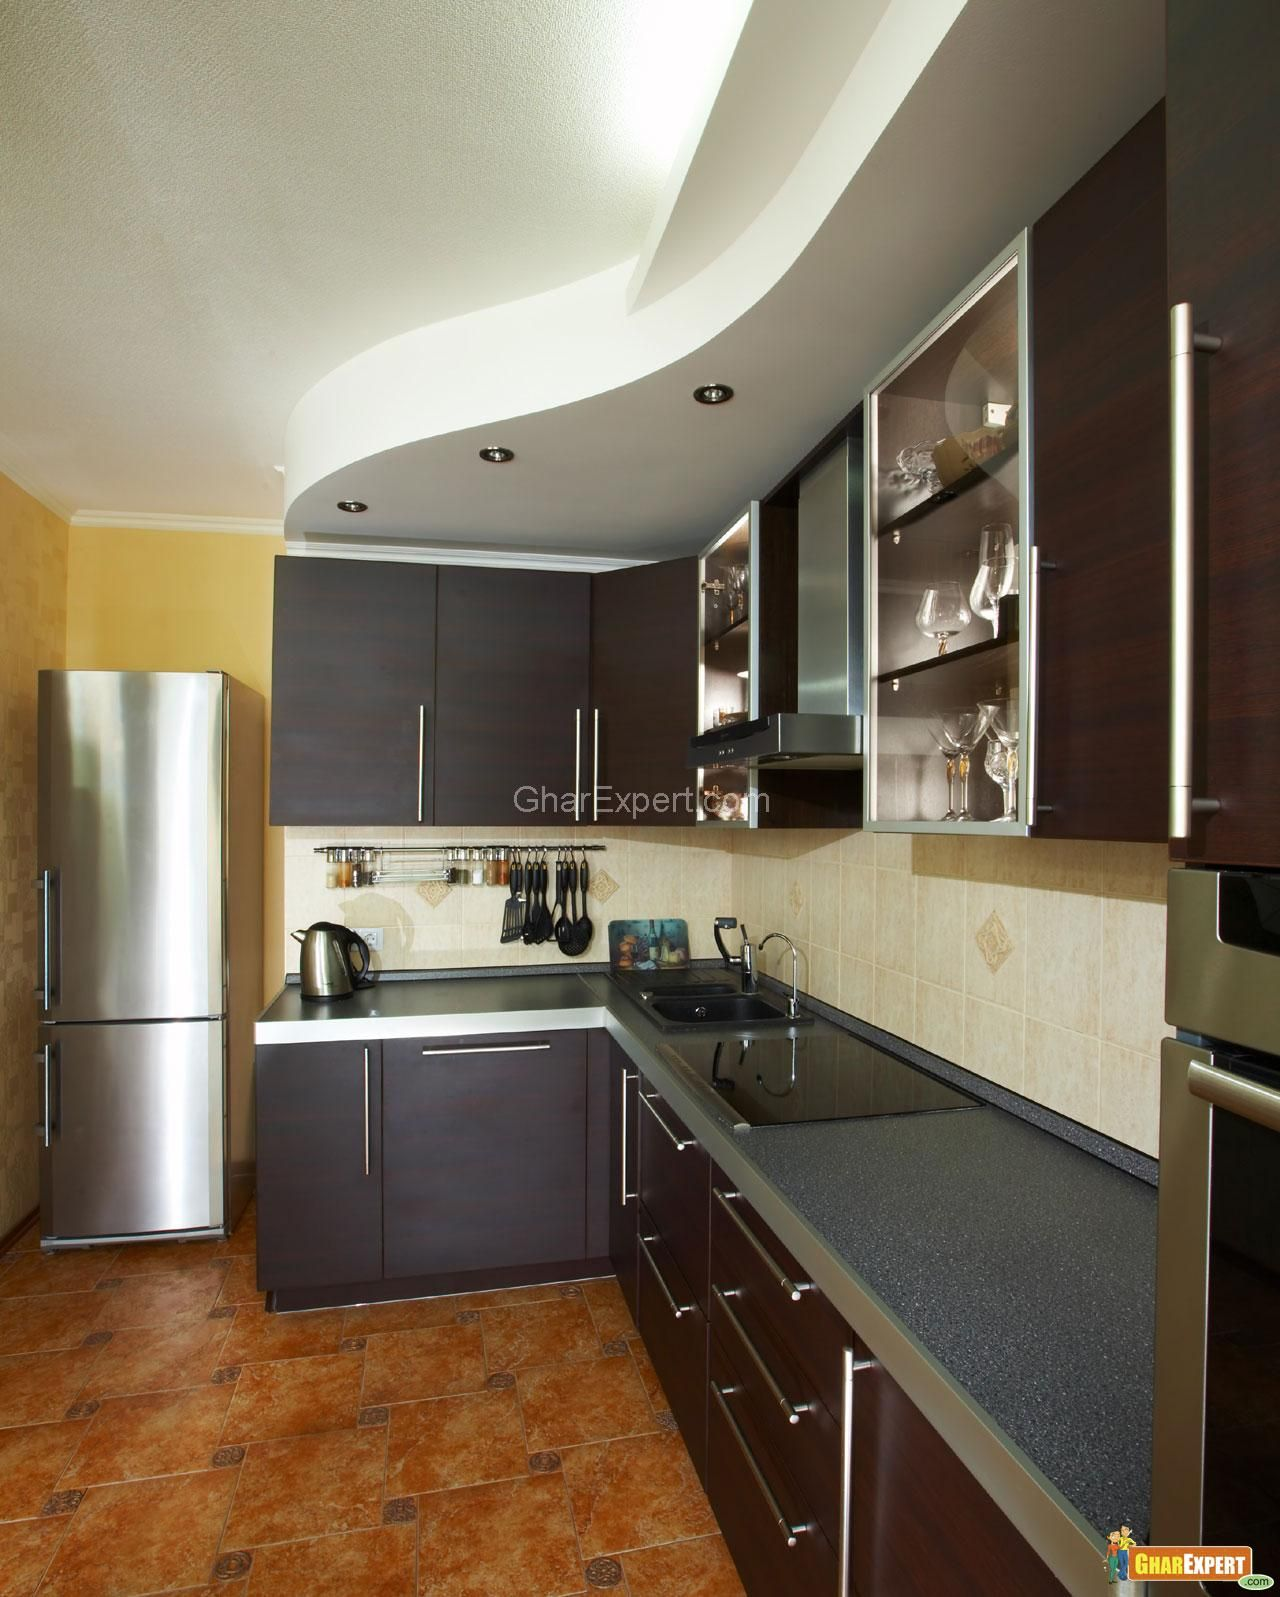 Merveilleux Modern Compact Kitchen Interior Design In Open Plan Layout With Sectional  Teak Kitchen Counter Below Wavy